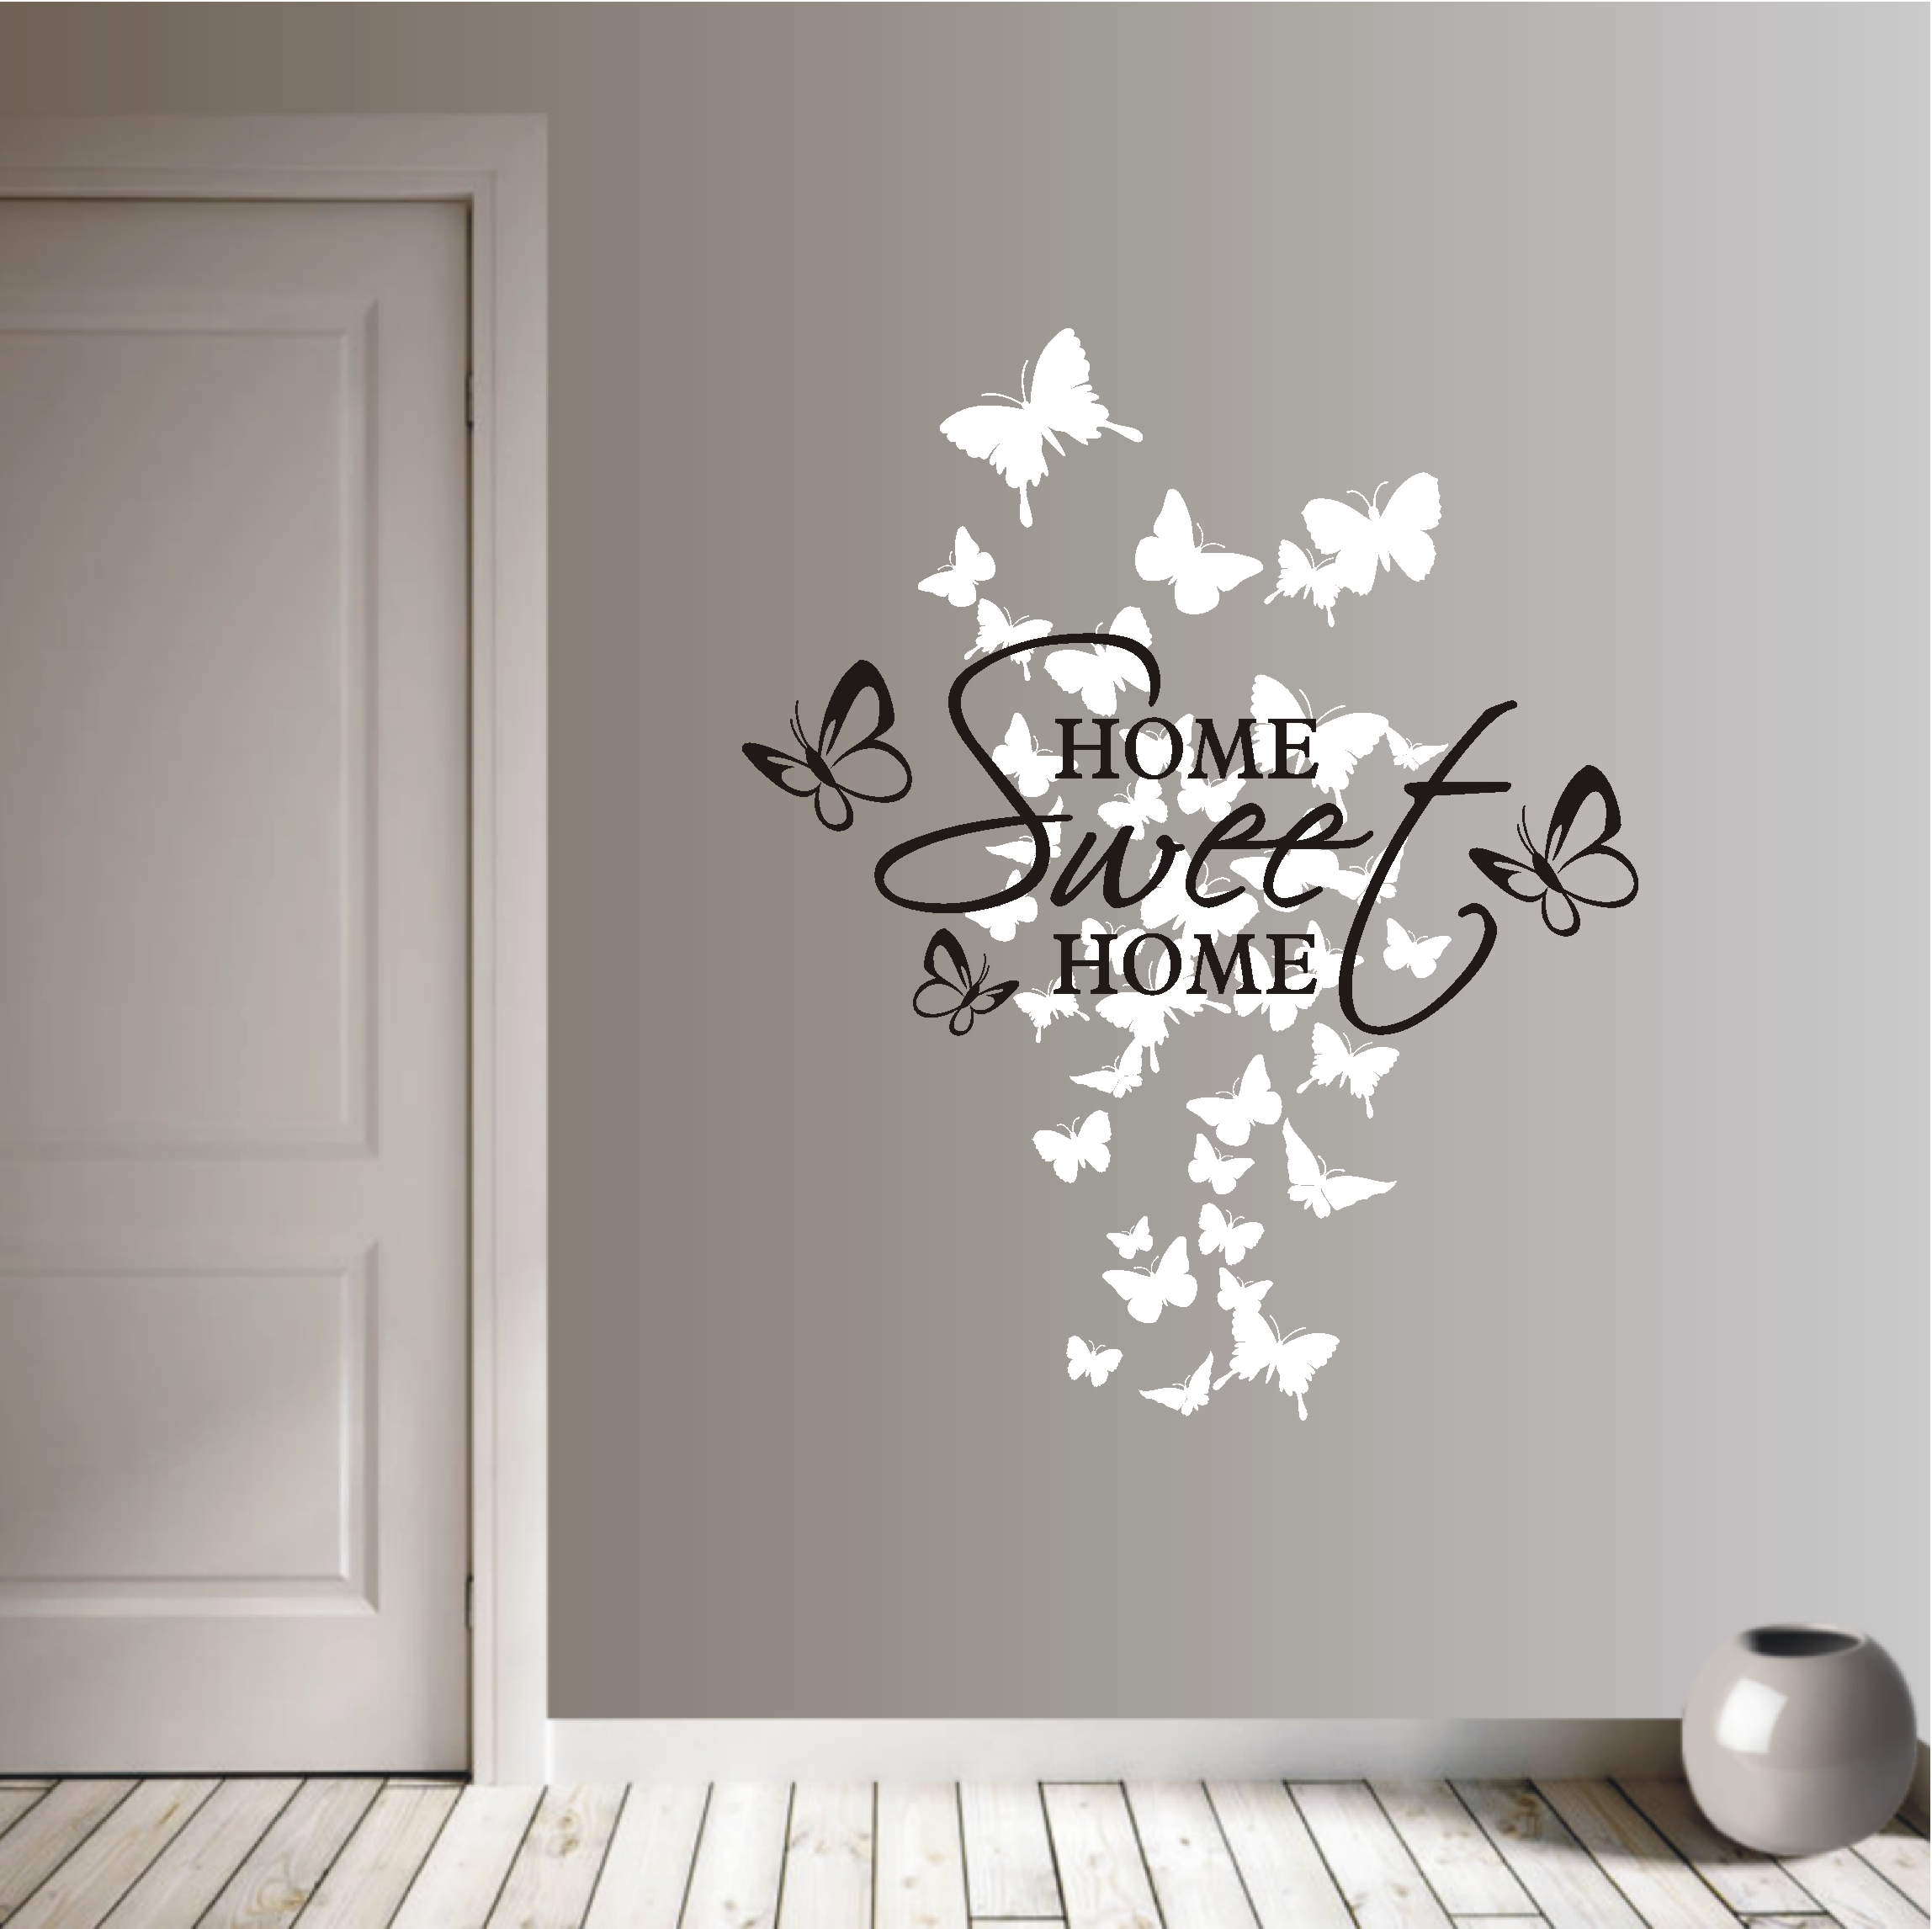 Deko Shop Wandtattoo Home Sweet Home 2 Farbig Deko